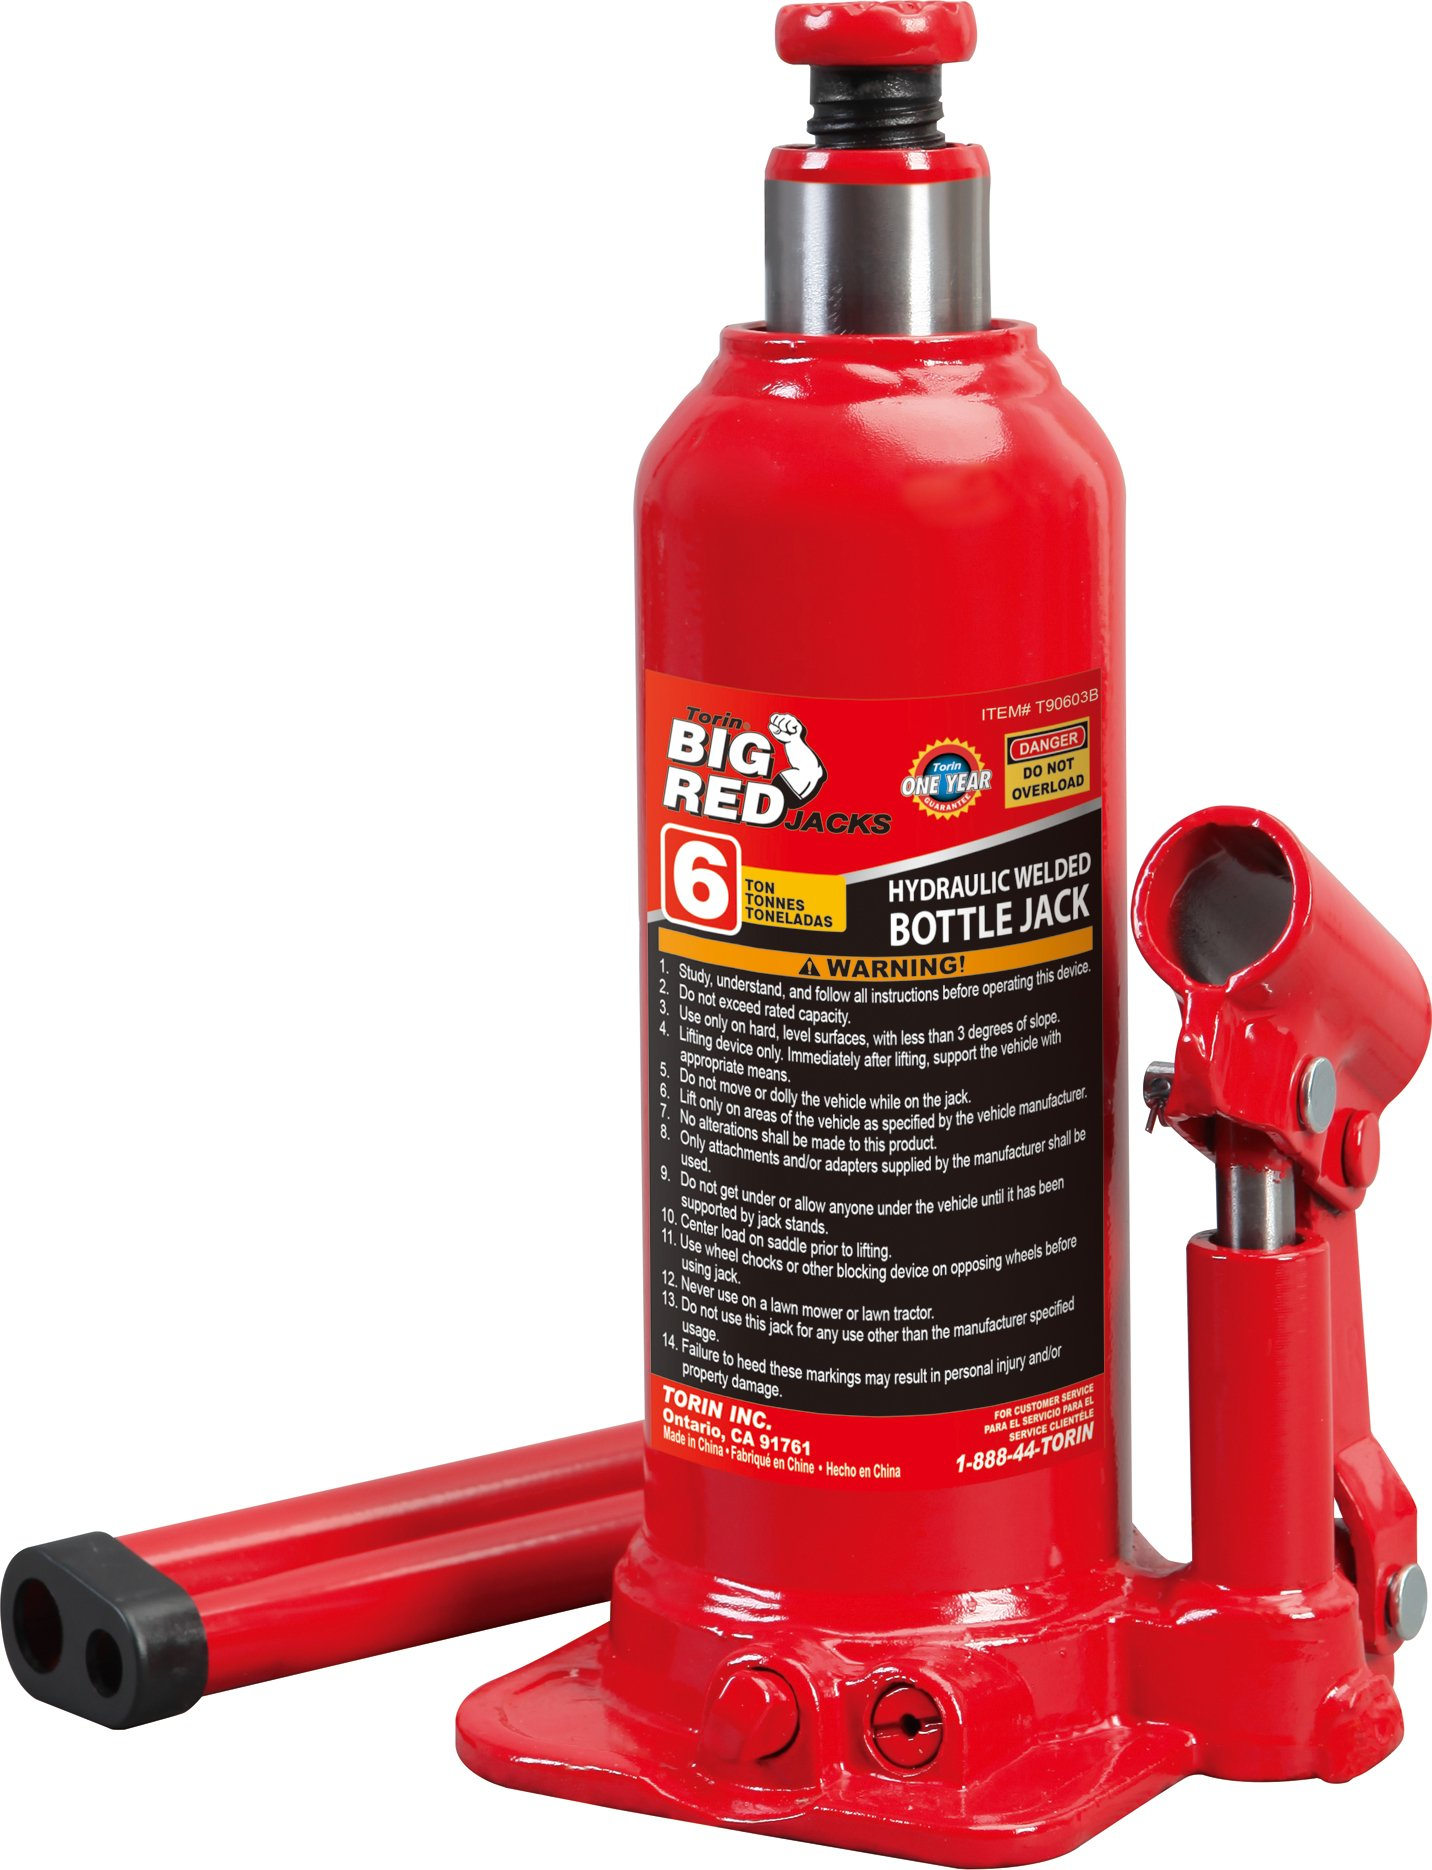 Torin Big Red Hydraulic Bottle Jack, 6 Ton Capacity by Torin